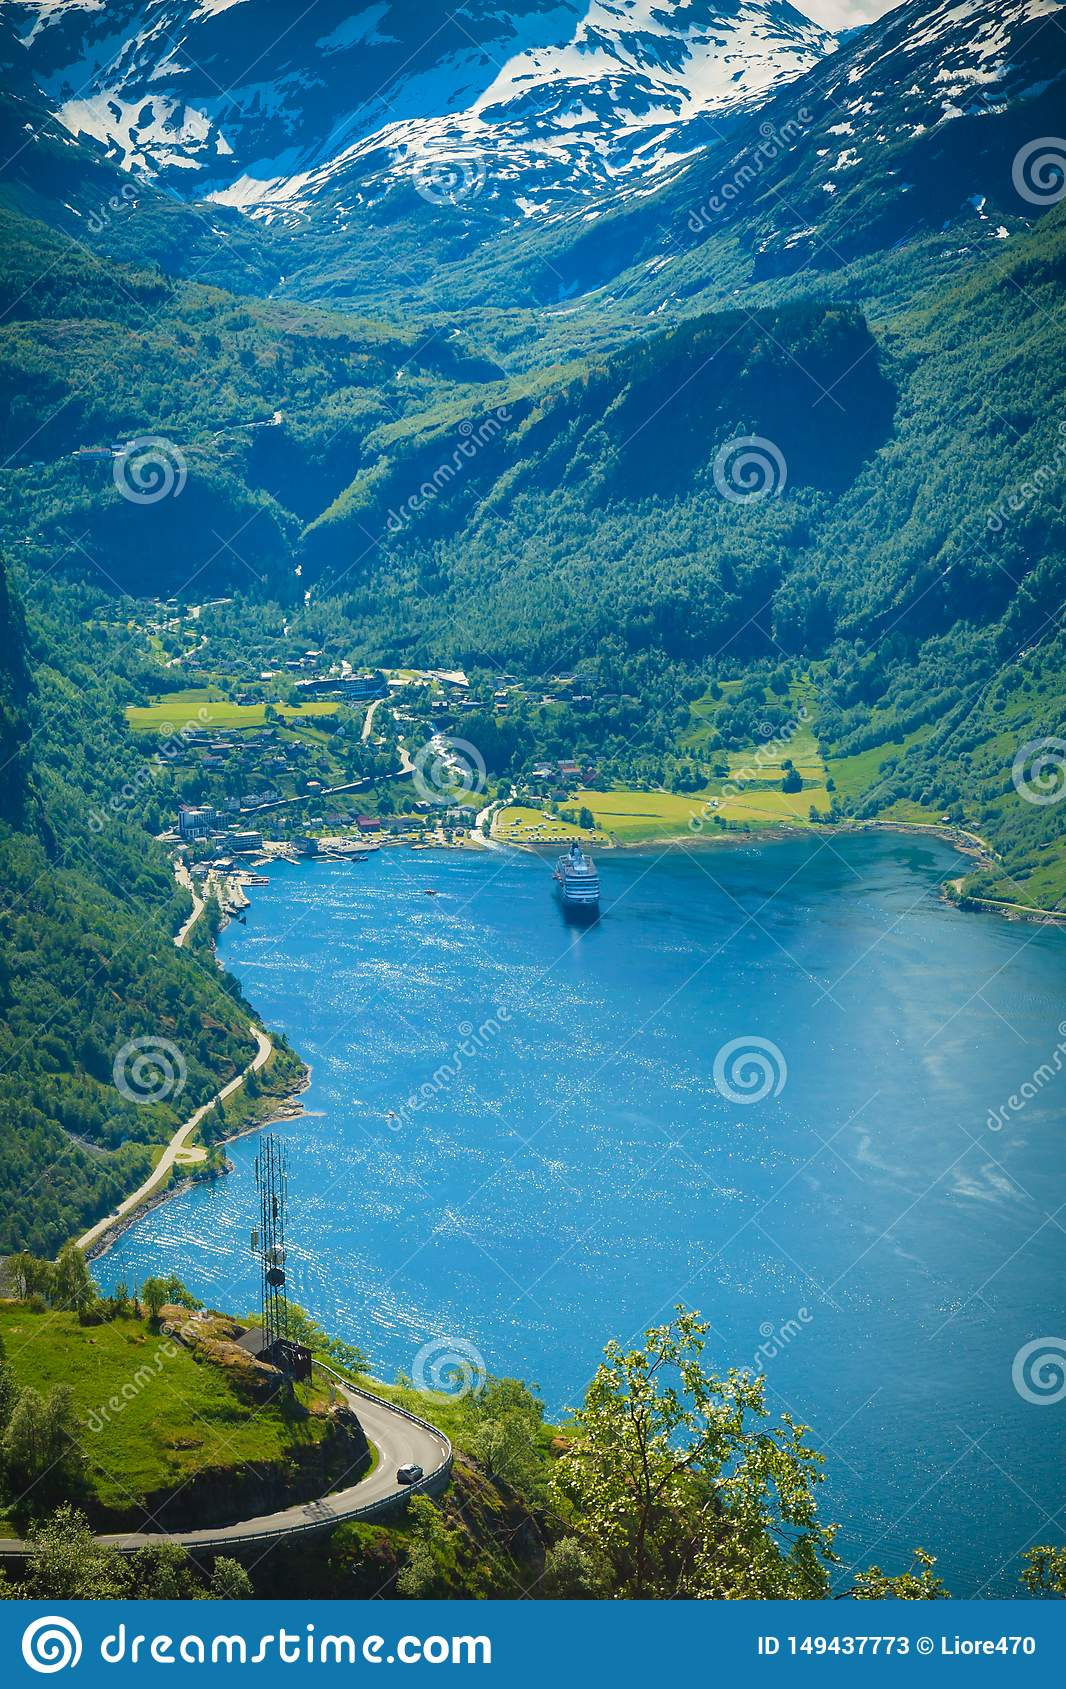 Spectacular view of the Geiranger Fjord in Norway